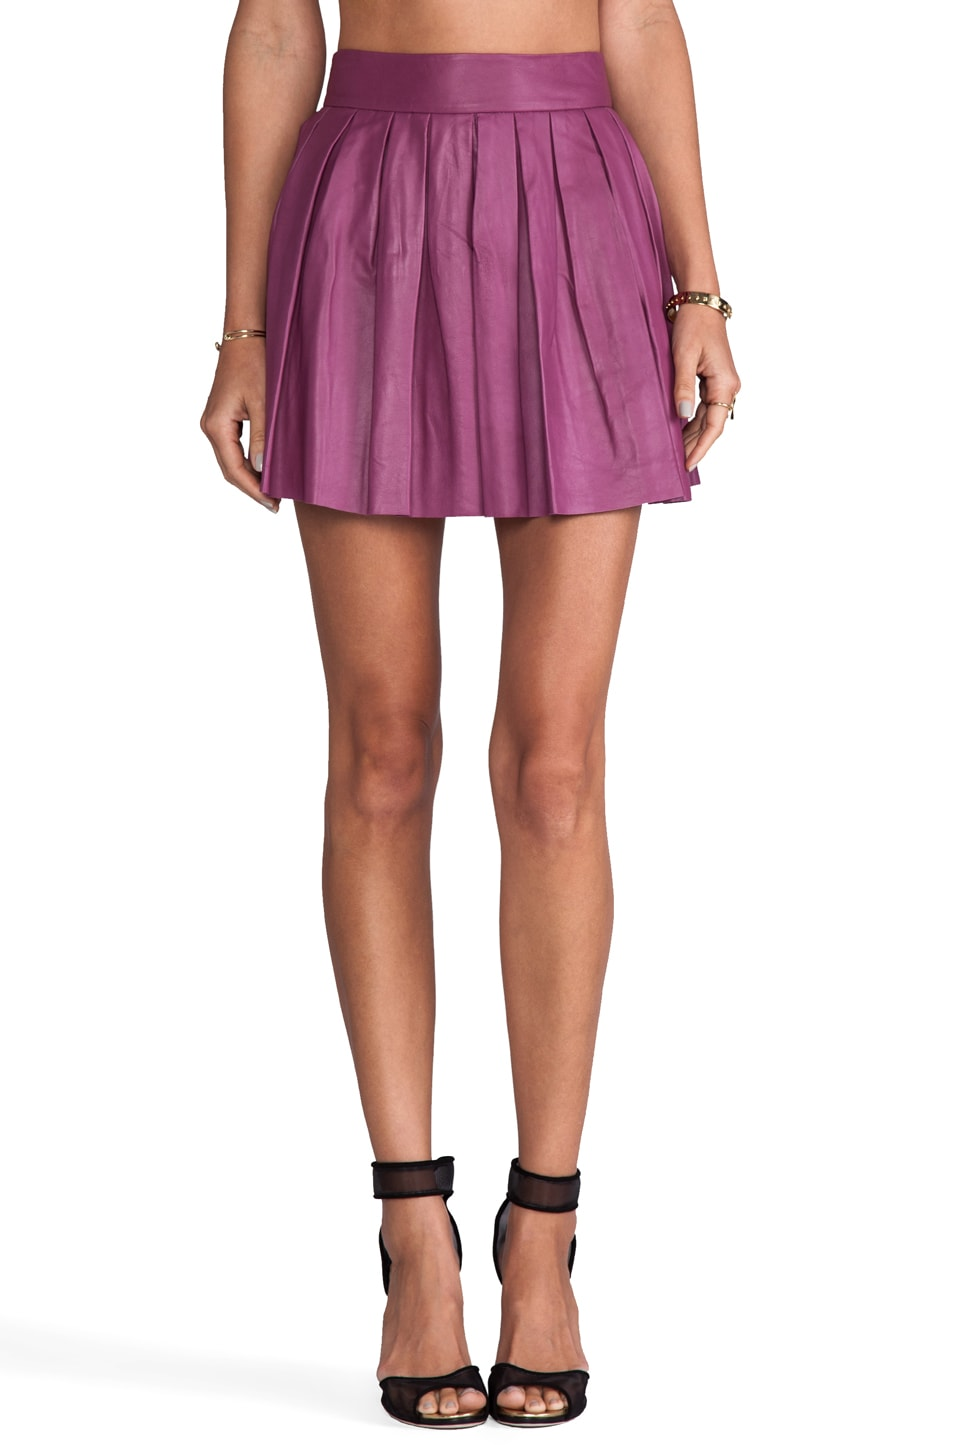 Alice + Olivia Box Pleat Leather Skirt in Mulberry